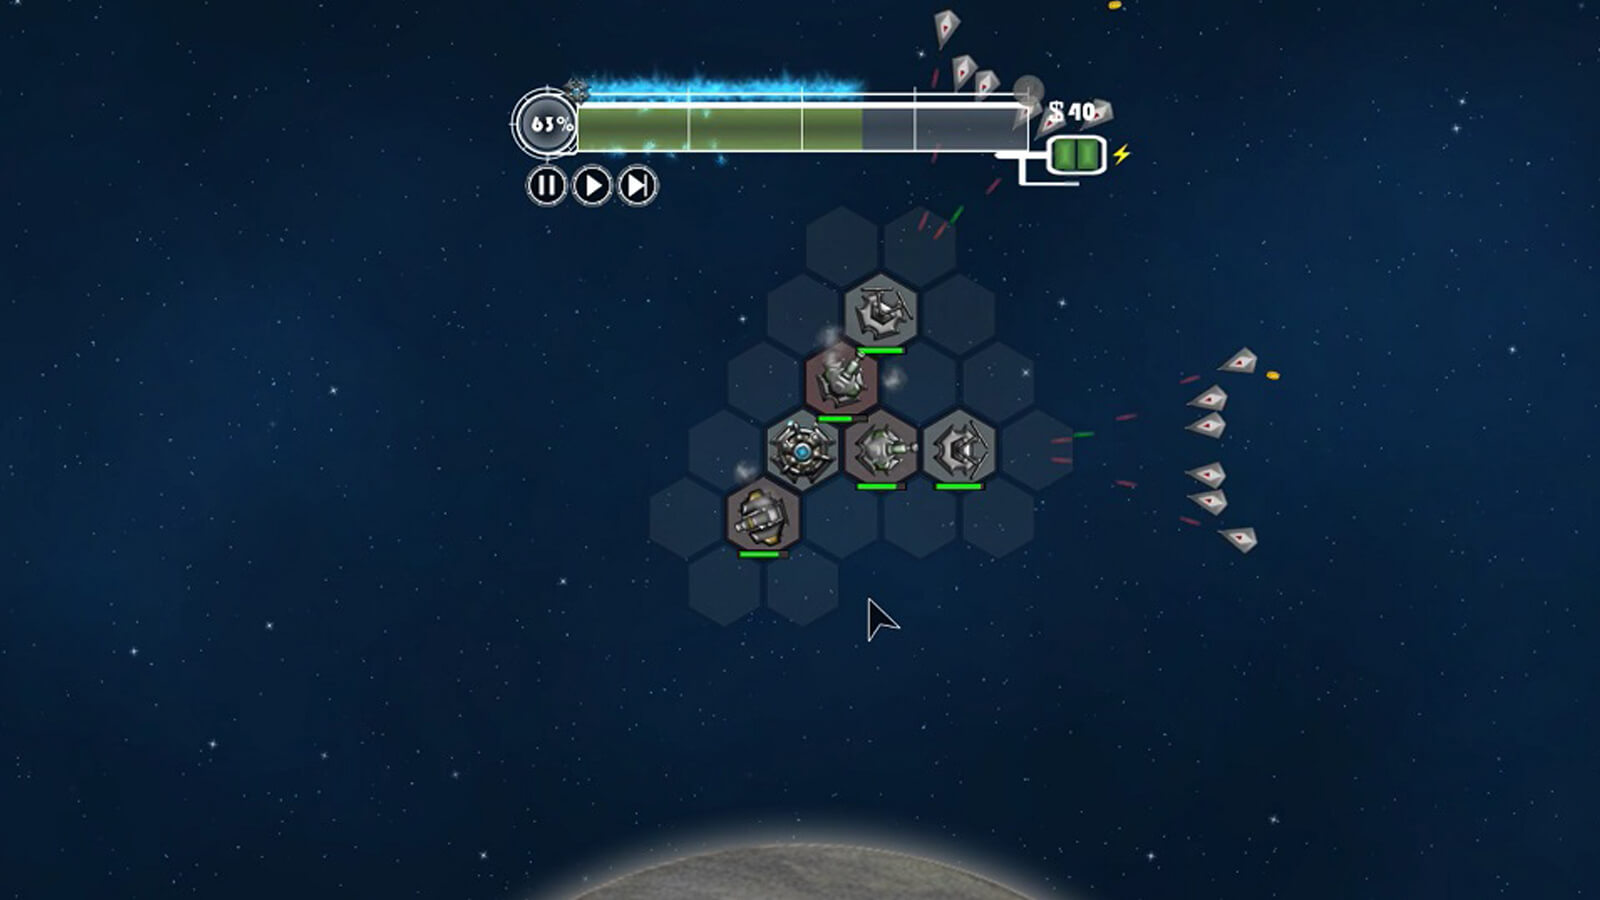 Six enemy ships converge and attack the defenses from the right-side of the screen